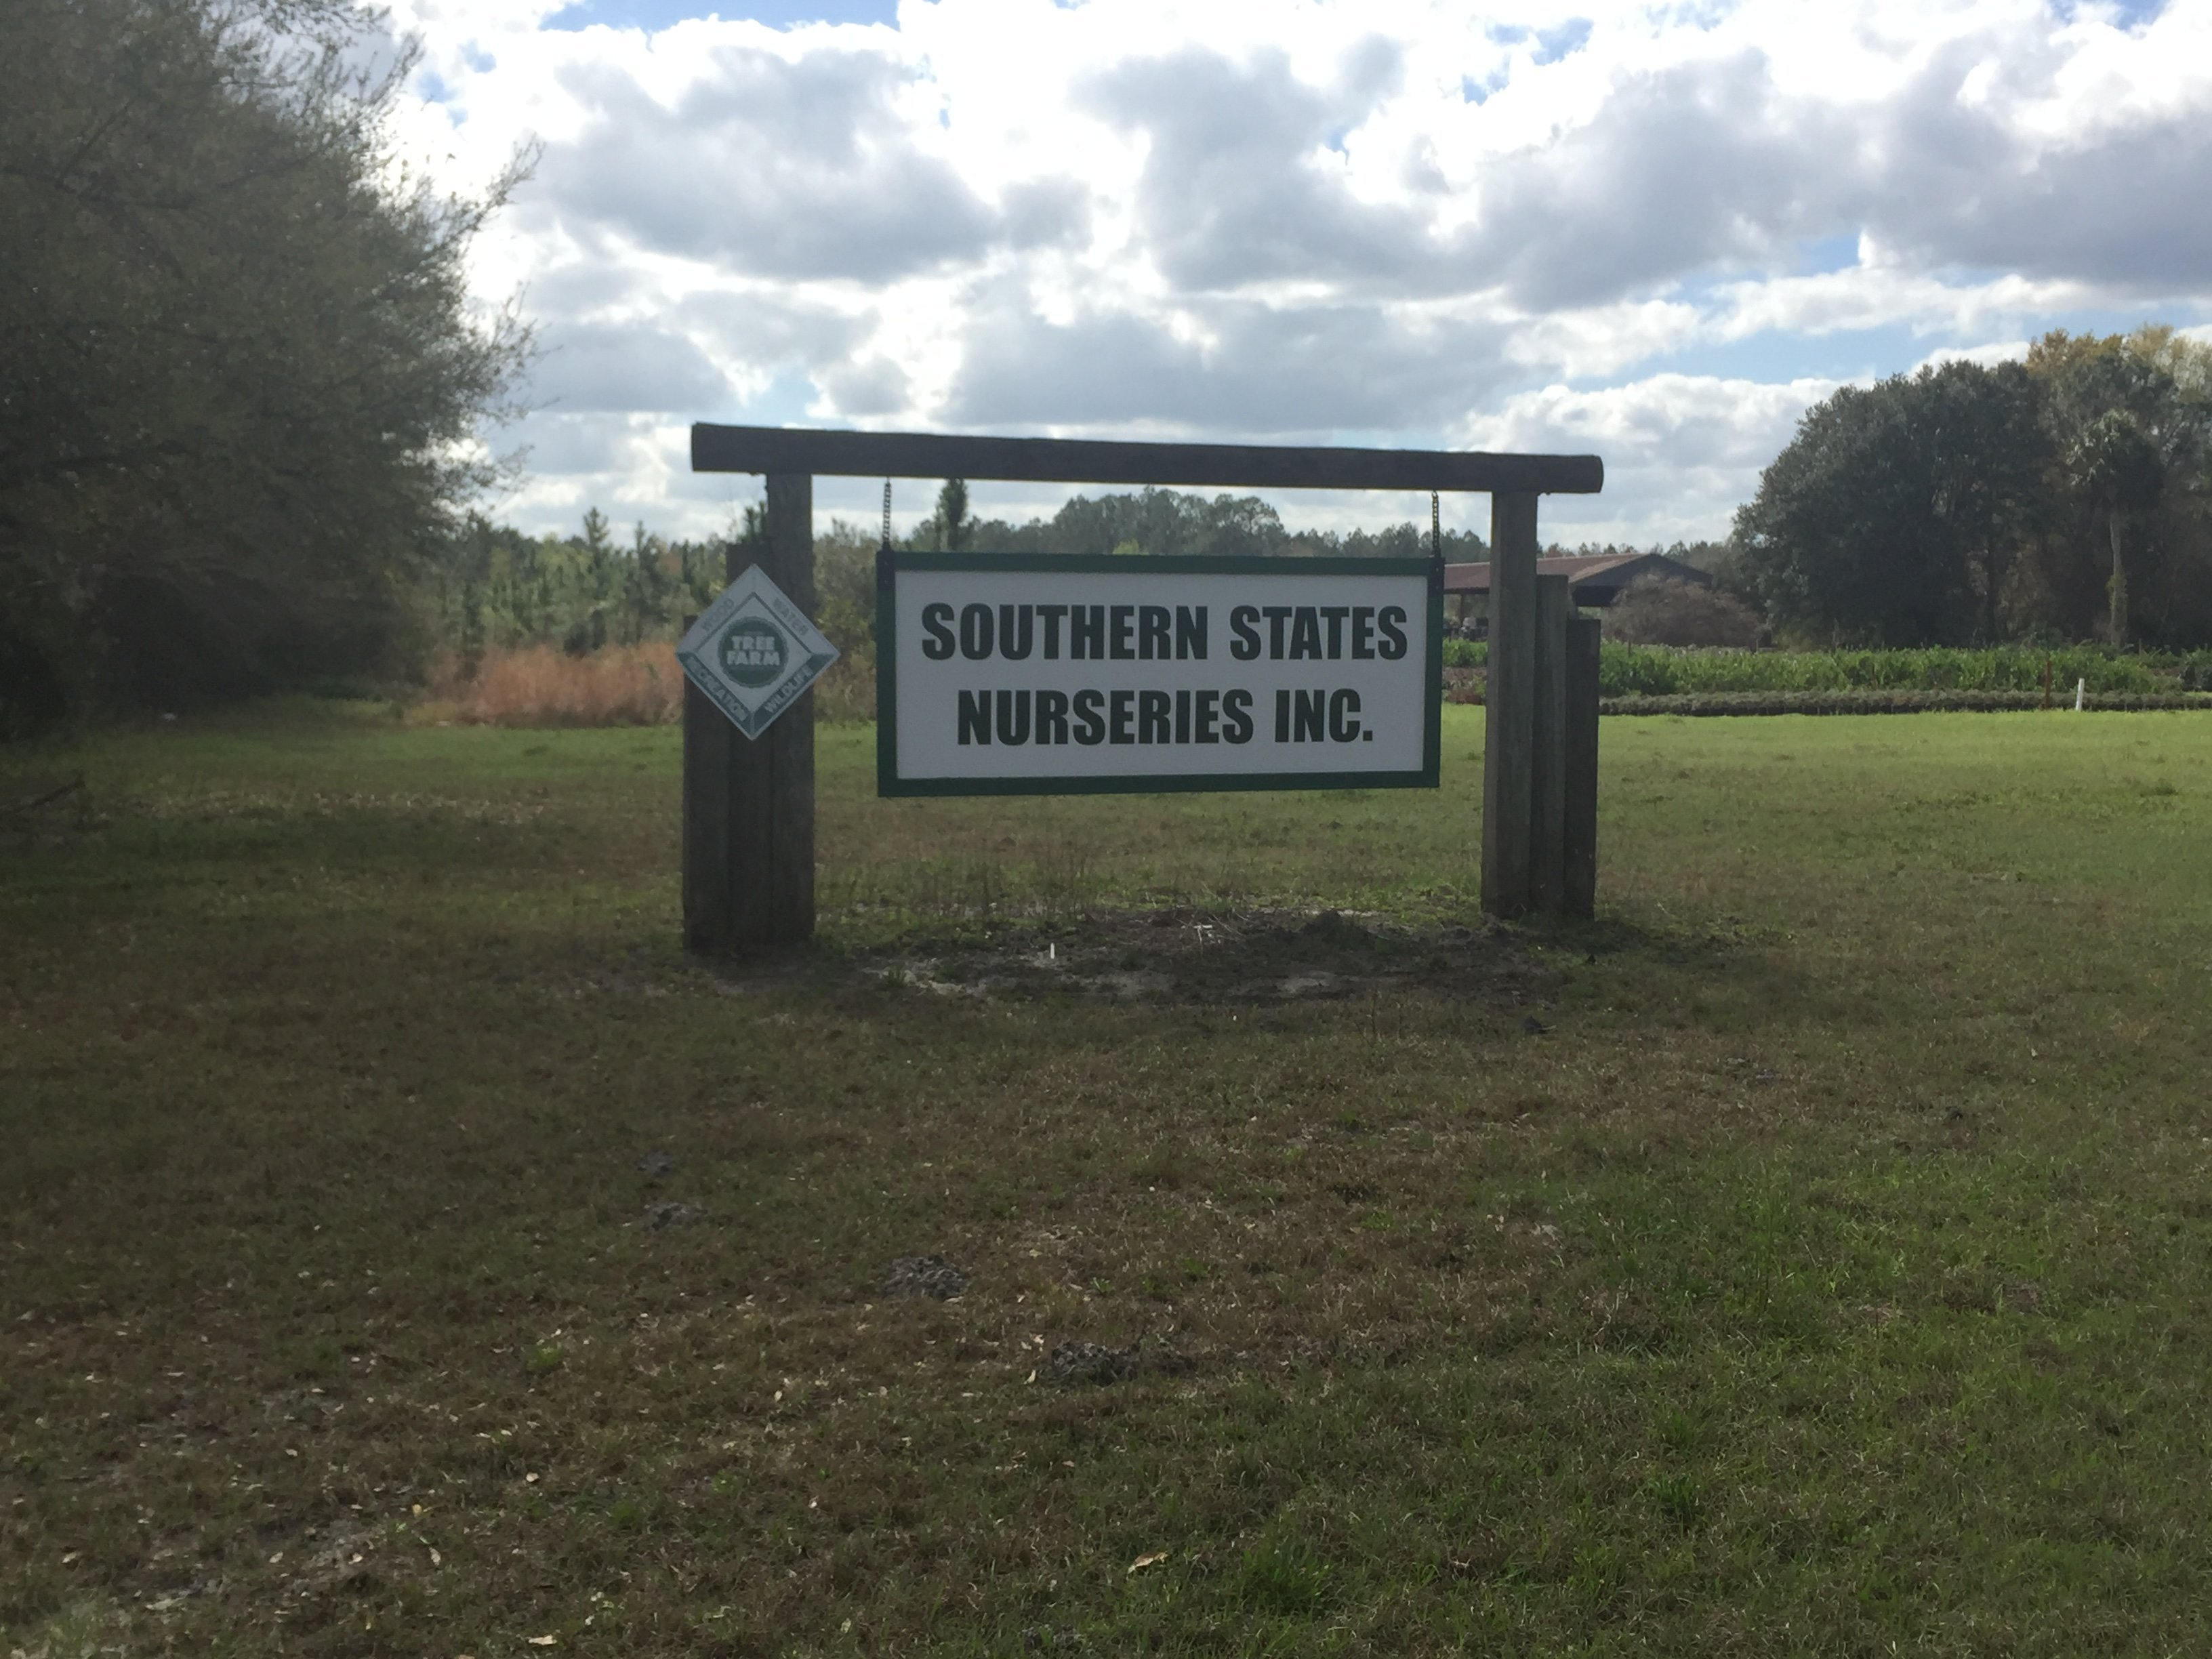 Southern States Nurseries Inc sign, the setting of the fatal shooting of Dominic Jerome Broadus II on February 3, 2018